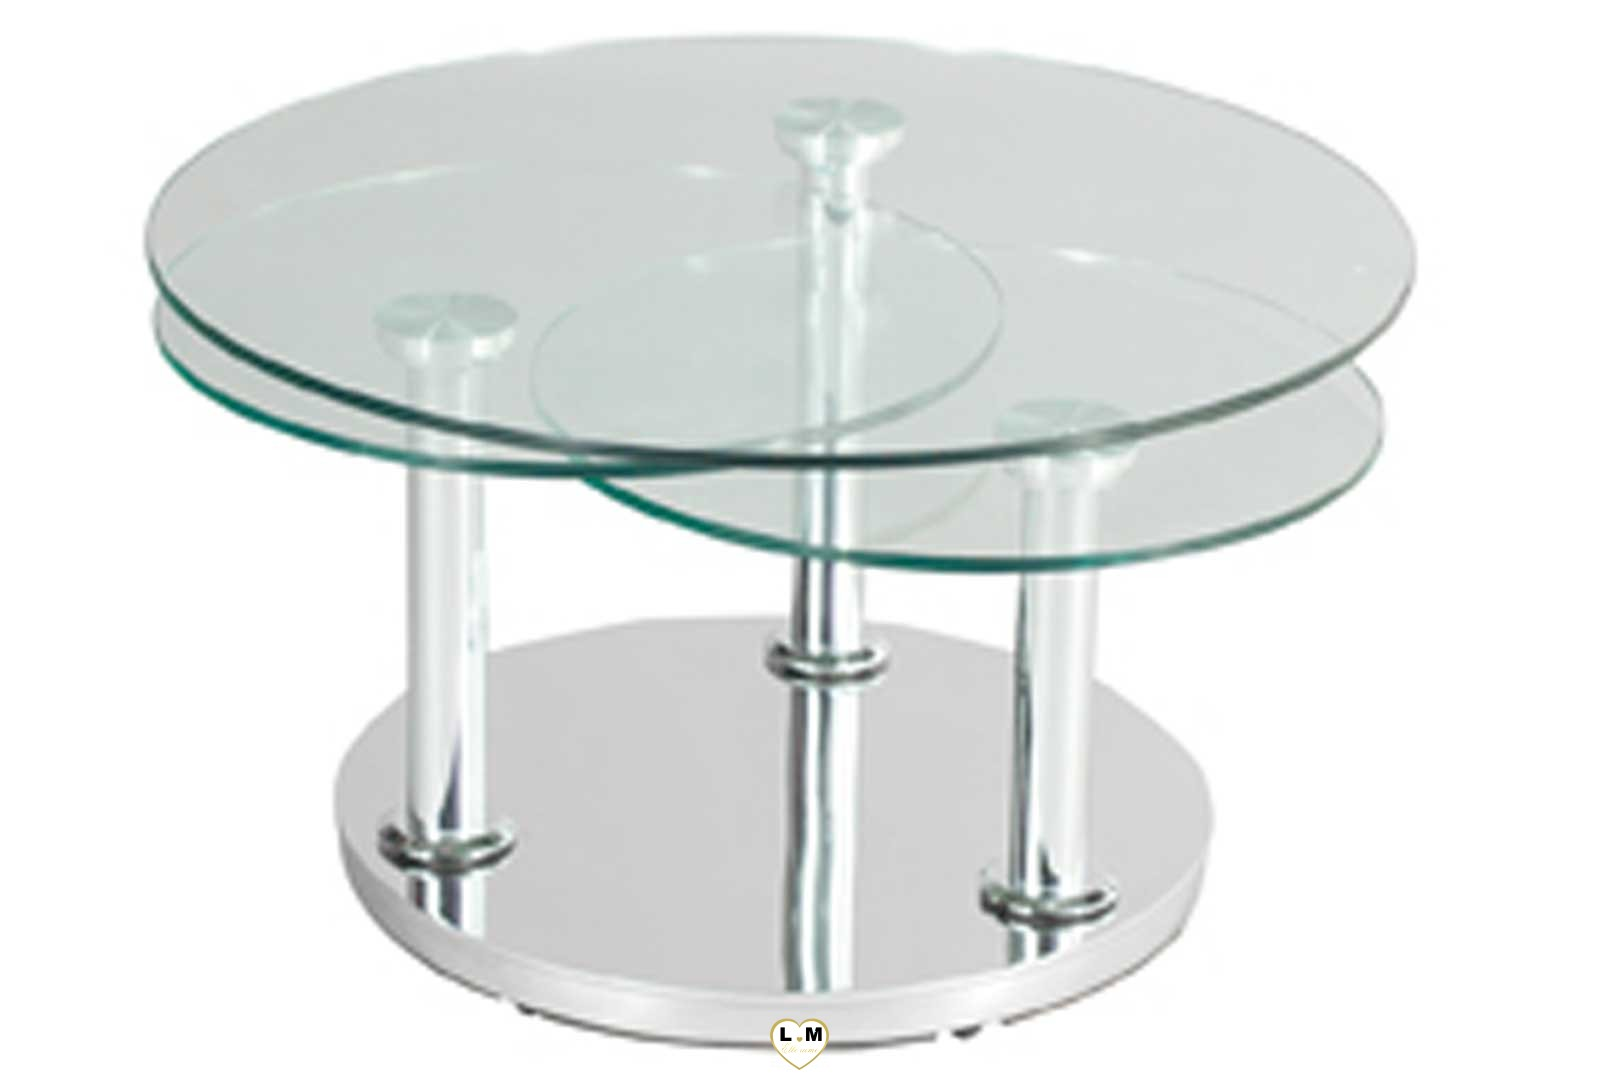 montparnasse chrome silver table basse verre articulee lignemeuble com. Black Bedroom Furniture Sets. Home Design Ideas